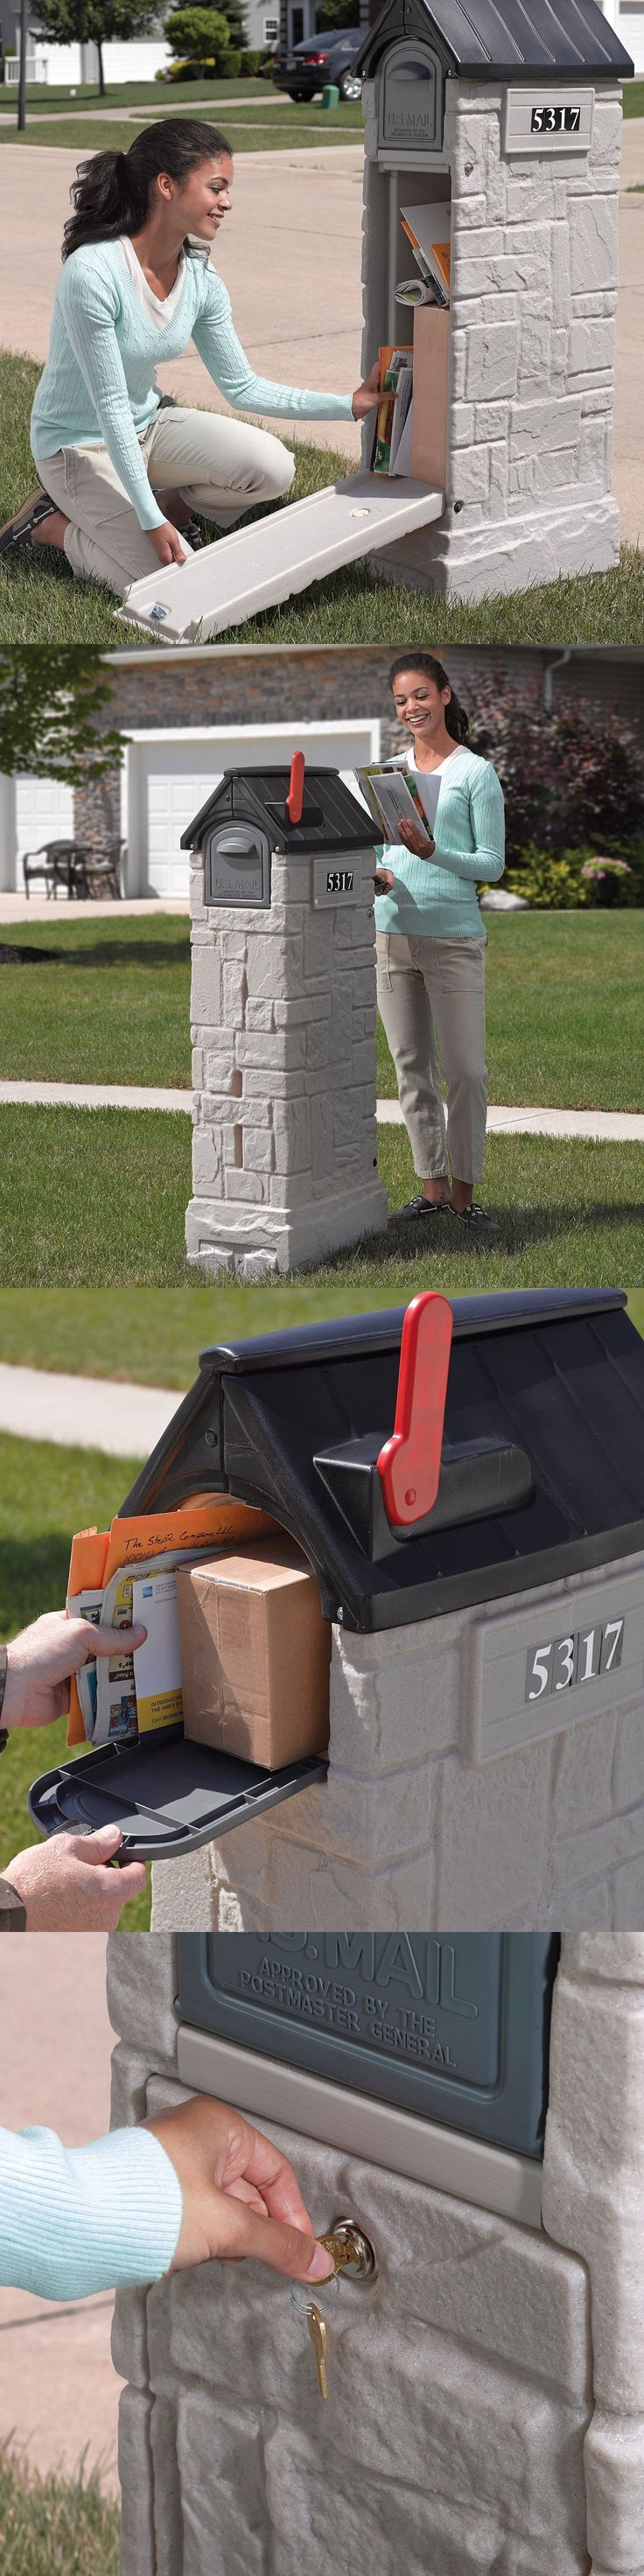 Goals and Nets 165936: Big Residential Mail Box Locking Home House Secure Tall Decorative Post Mount BUY IT NOW ONLY: $151.66